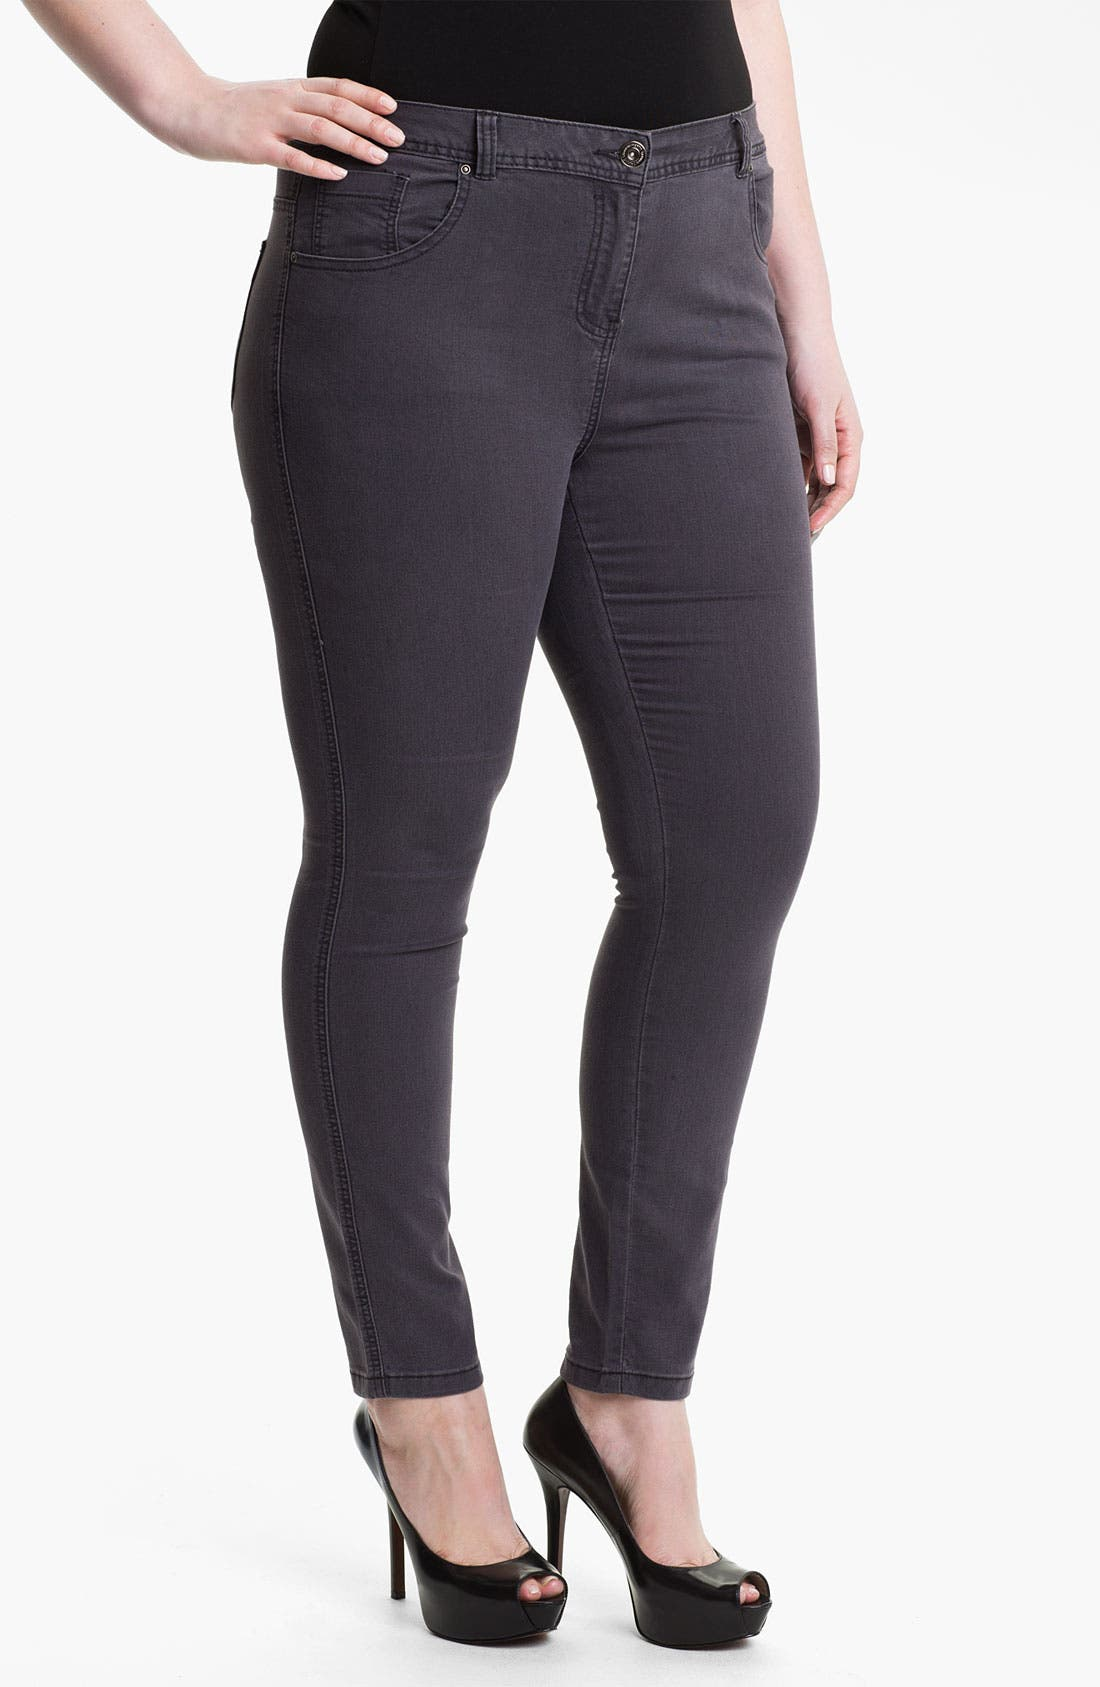 Alternate Image 1 Selected - Evans Straight Leg Slim Jeans (Plus Size)